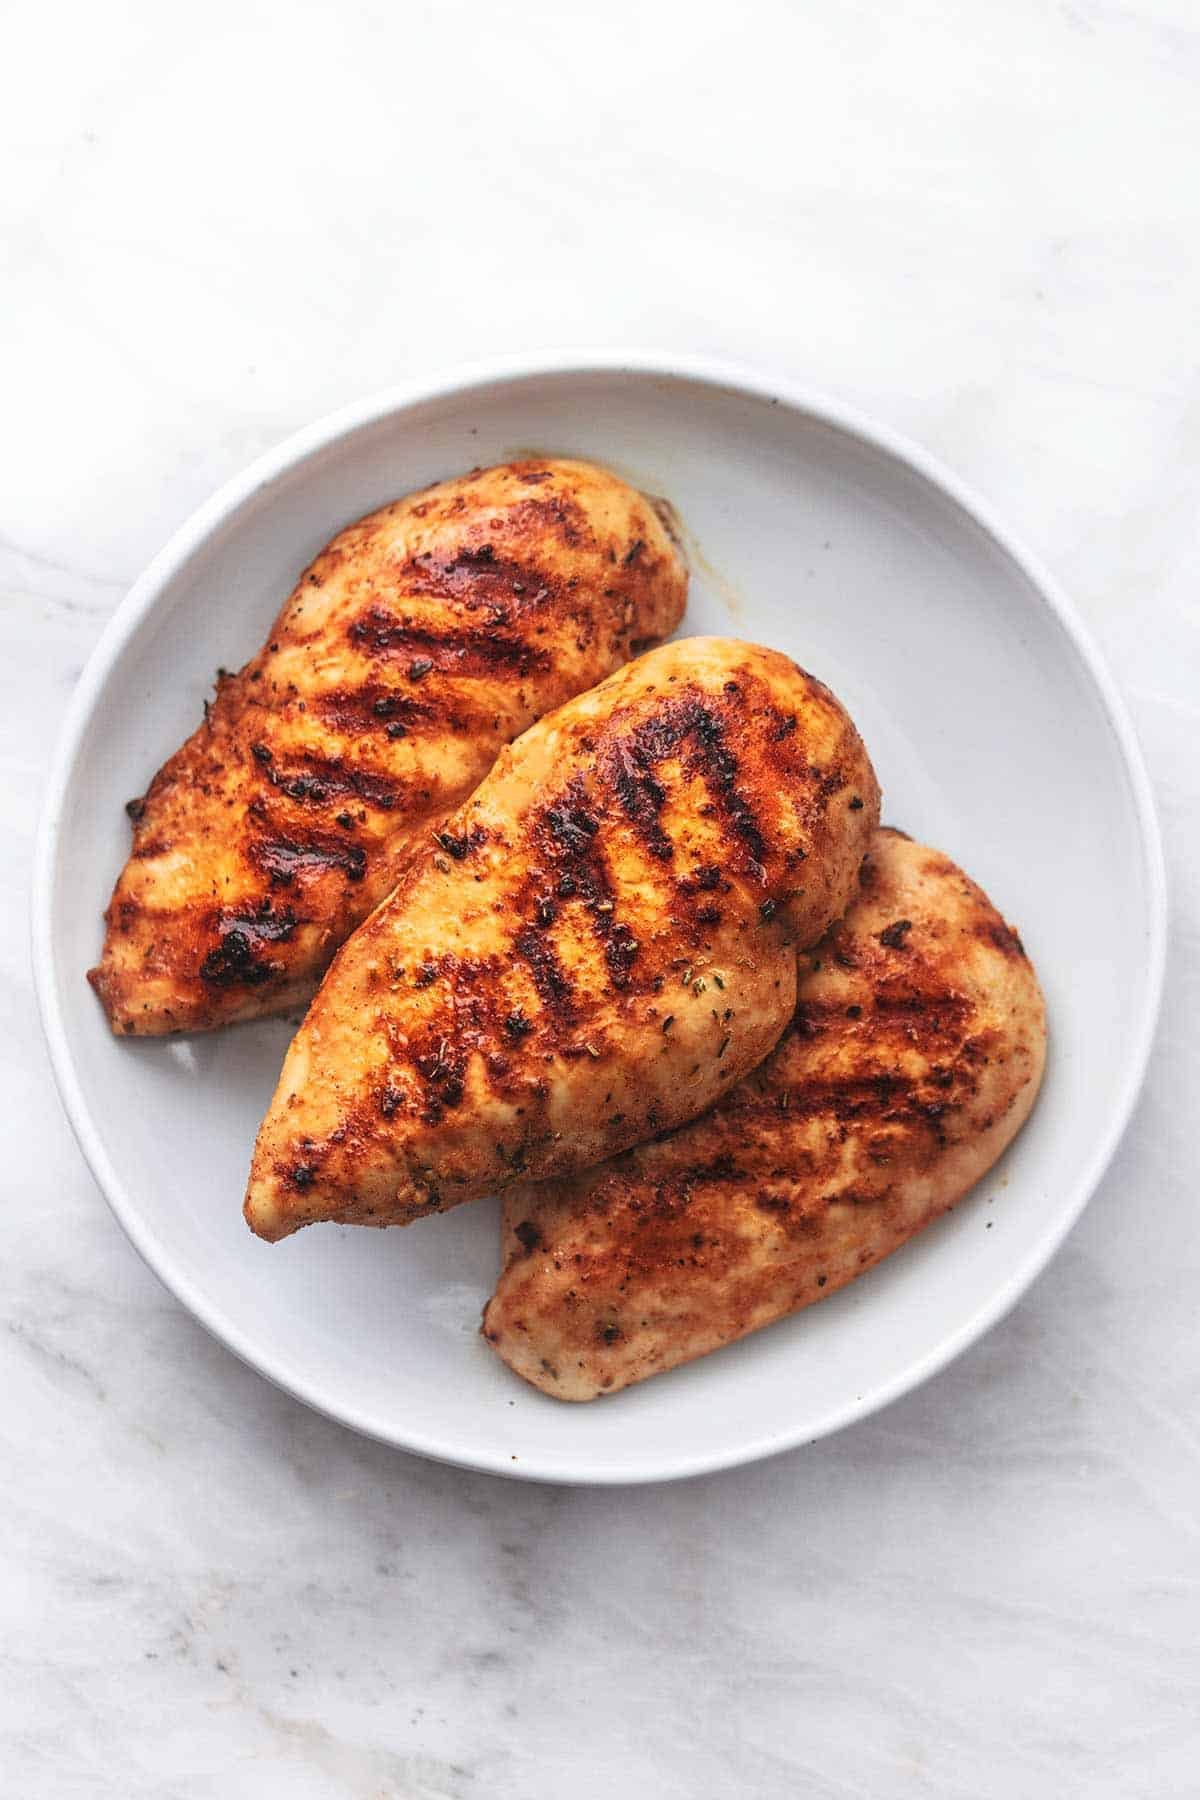 grilled chicken breasts on a white plate